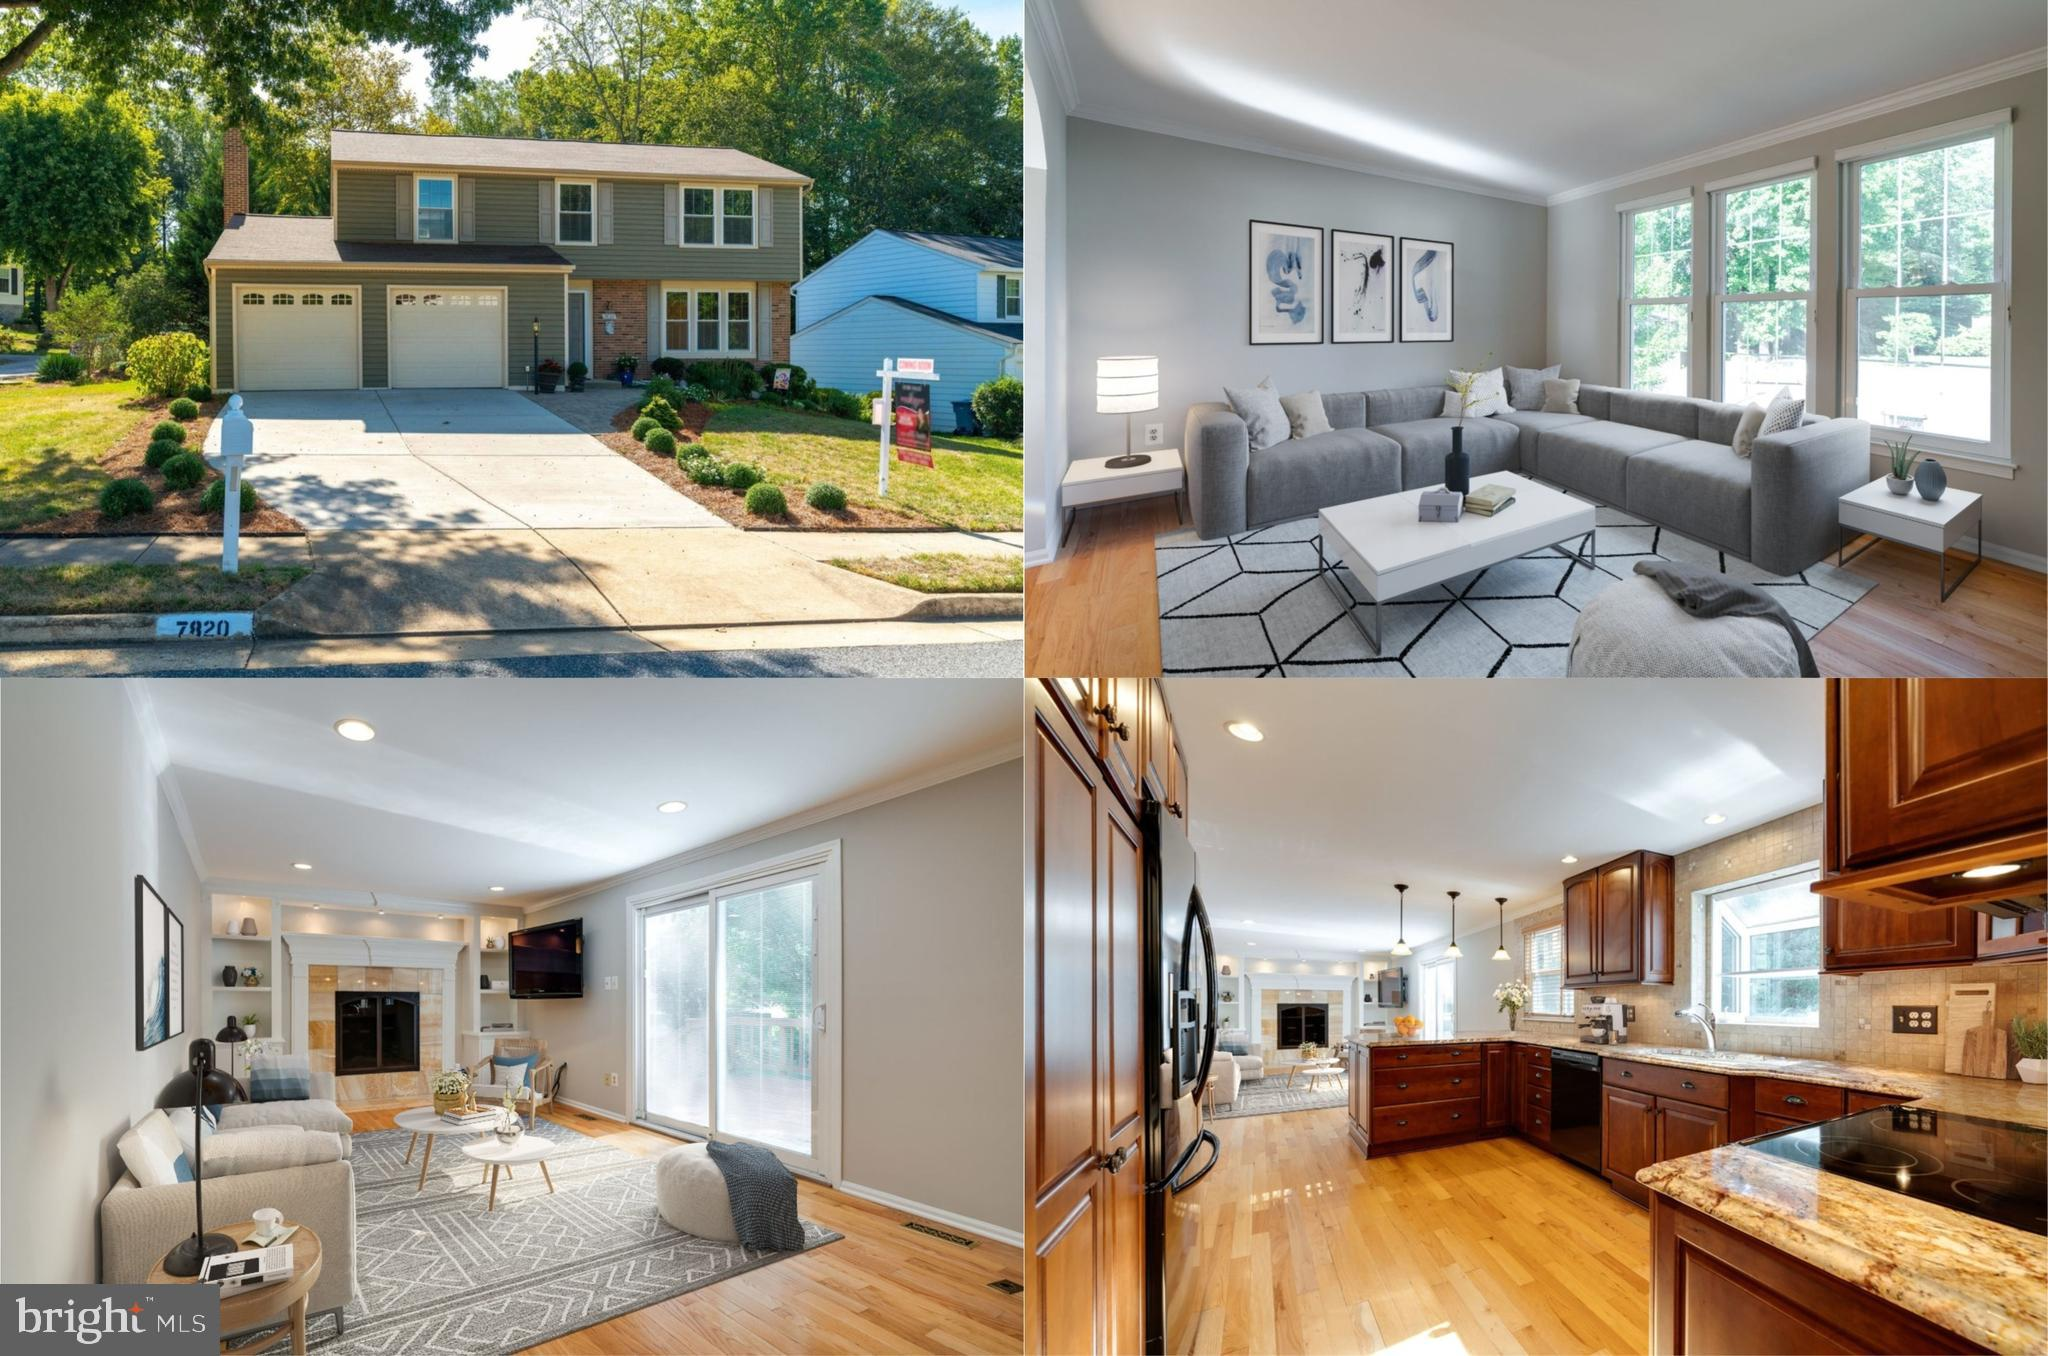 OFFER DEADLINE - MONDAY, 9/9 AT NOON. This beautifully renovated 4 bedroom, 3.5 bath colonial shines like a fine diamond and is loaded with upgrades. A tailored exterior, 2 car garage, expert landscaping, large deck, rich hardwood flooring, fresh on-trend neutral paint and decorative moldings, gas fireplace and custom built-ins are just some of the fine features that make this home so special. An open floor plan and an abundance of windows create a light and bright atmosphere, while completely renovated gourmet kitchen and baths and a fully finished lower level are just awaiting your arrival. Harwood floors in the foyer welcome you home and continue in the living room where natural light from triple windows illuminates decorative moldings and neutral designer paint. The formal dining room provides plenty of space for both formal and casual occasions, as a contemporary chandelier adds tailored distinction. The renovated gourmet kitchen will please the enthusiastic chef with gleaming granite countertops, an abundance of custom 42 inch cabinetry with pull out drawers, some with electrical outlets for small appliances, quality appliances including a built-in microwave, glass top range and French door refrigerator, while a peninsula with triple pendant lighting adds an additional working surface and bar seating. The adjoining family room features a remote gas fireplace flanked by built-in bookcases custom lighting. Here, a sliding glass door opens to the large deck overlooking a lush yard with storage shed backing to large evergreen trees~seamlessly blending indoor and outdoor living and entertaining. Back inside, a powder room with pedestal sink and wainscoting complements the main level. Upstairs, the gracious owner's suite boasts plush carpeting, a lighted ceiling fan, and walk-in closet. The en suite bath features a granite topped vanity and glass enclosed step in shower with built-in niches, spa-toned tile and decorative inlay. Down the hall, three additional bright and cheerful bedrooms, each with lighted ceiling fans and generous closet space share the beautifully appointed hall bath. The walkout lower level showcases a family room custom built-ins and wet bar is sure to be a popular gather spot with plenty of space for media and simple relaxation. A versatile den/5th bedroom, another full bath, laundry room with peg walls plus a newer HVAC and hot water heater complete the comfort and convenience of this wonderful home. This home is located in an excellent location with easy access to Fairfax County Parkway, I-95 and a multitude of shopping, dining and entertainment choices, parks and recreation, there is something here for everyone!